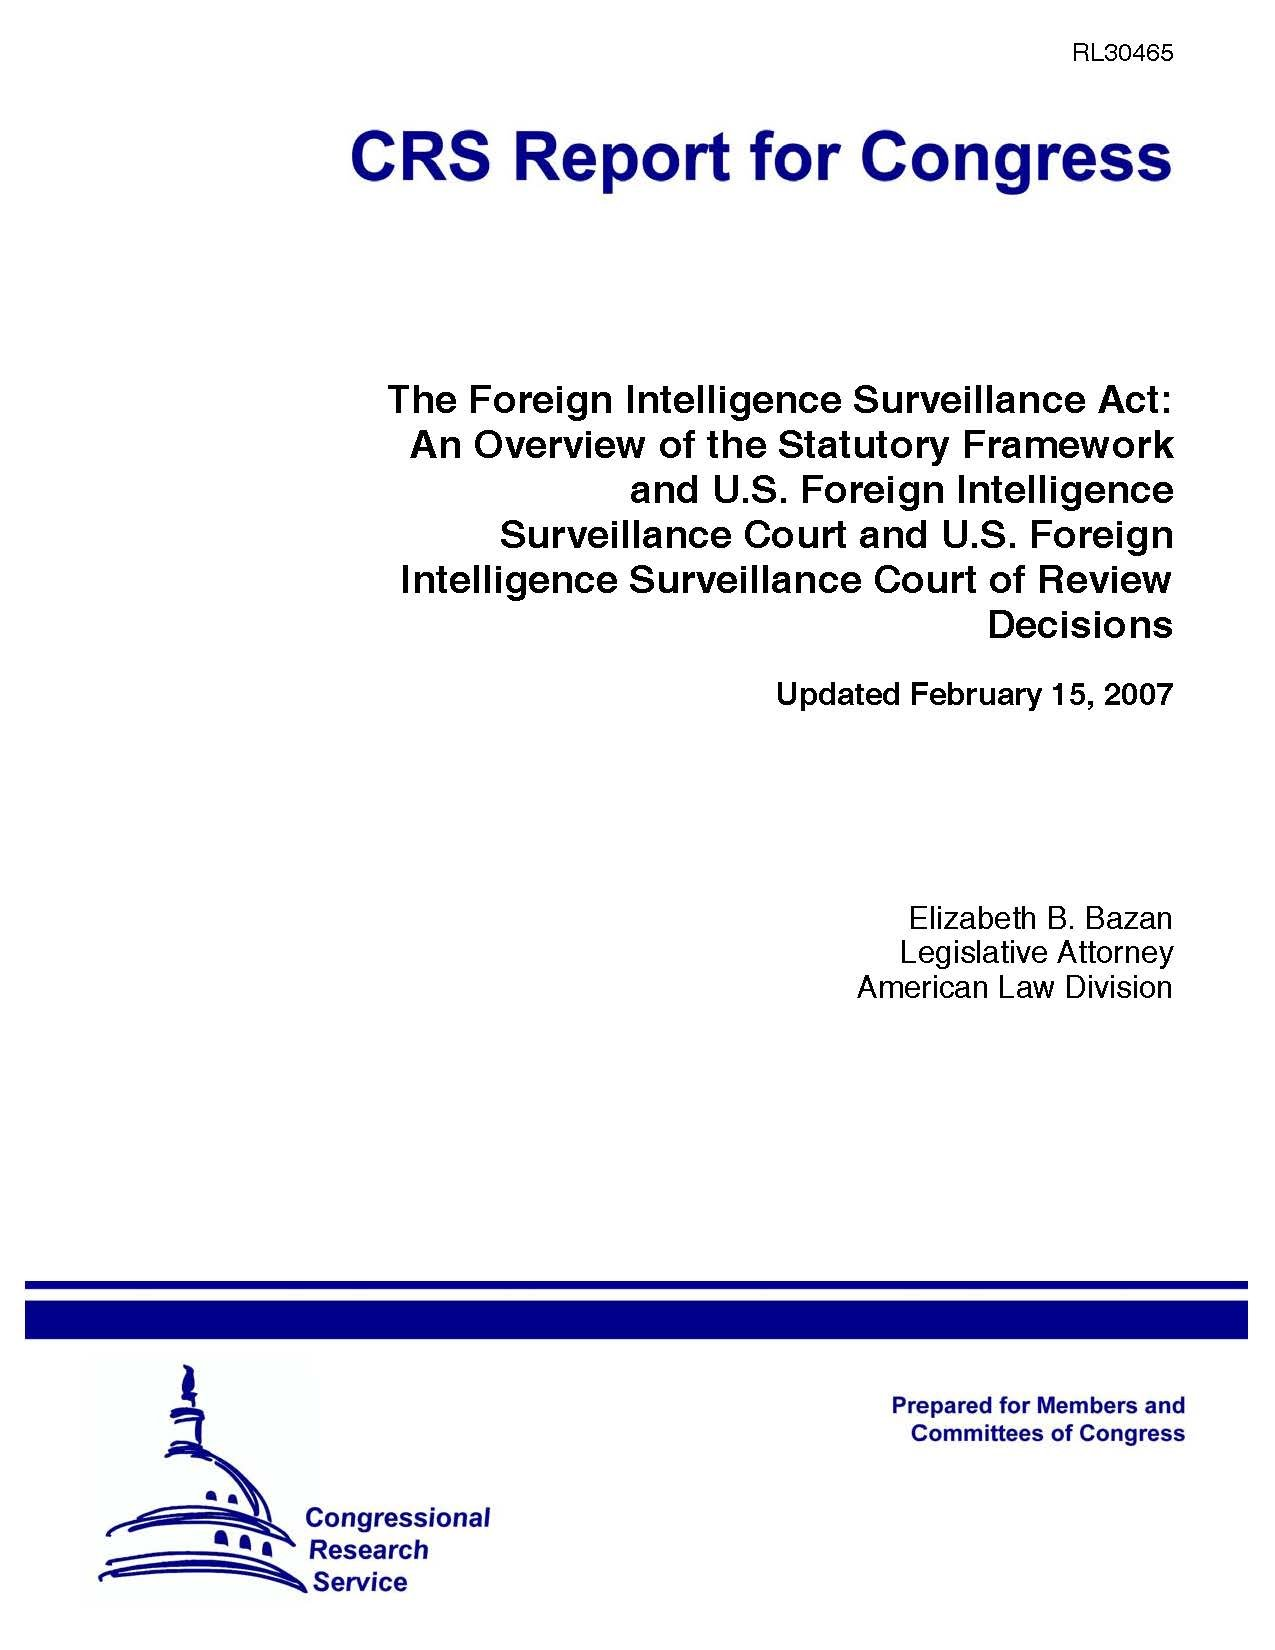 The Foreign Intelligence Surveillance Act: An Overview of the Statutory Framework and U.S. Foreign Intelligence Surveillance Court and U.S. Foreign Intelligence Surveillance Court of Review Decisions Updated February 15 2007 RL30465 [Loose Leaf] ebook